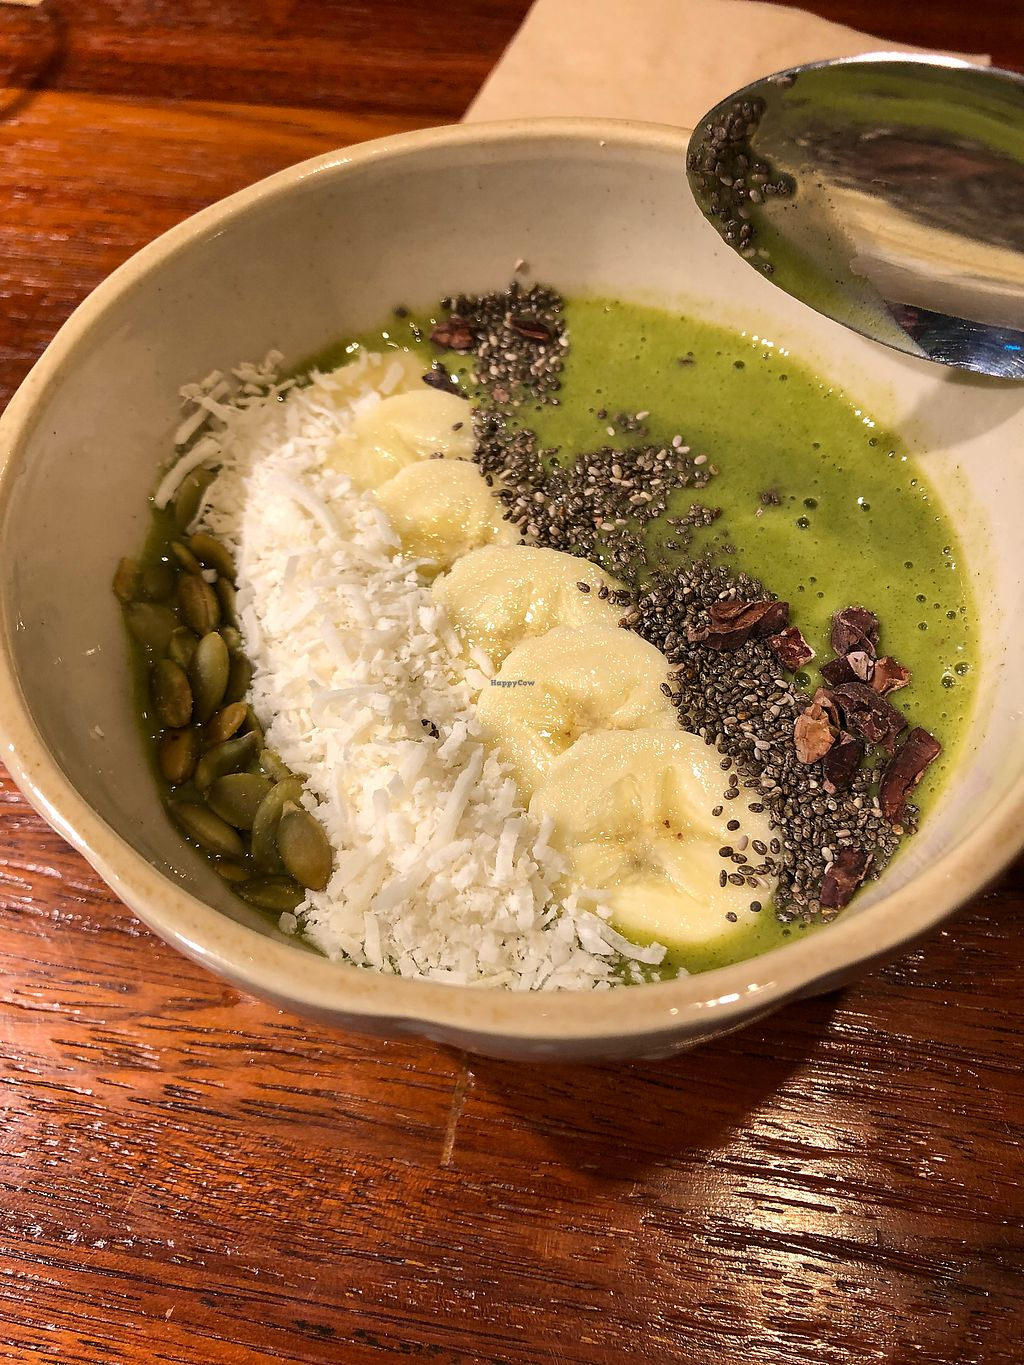 """Photo of The Picker - 더 피커  by <a href=""""/members/profile/Knauji82"""">Knauji82</a> <br/>Half of a match smoothie bowl <br/> December 2, 2017  - <a href='/contact/abuse/image/82594/331452'>Report</a>"""